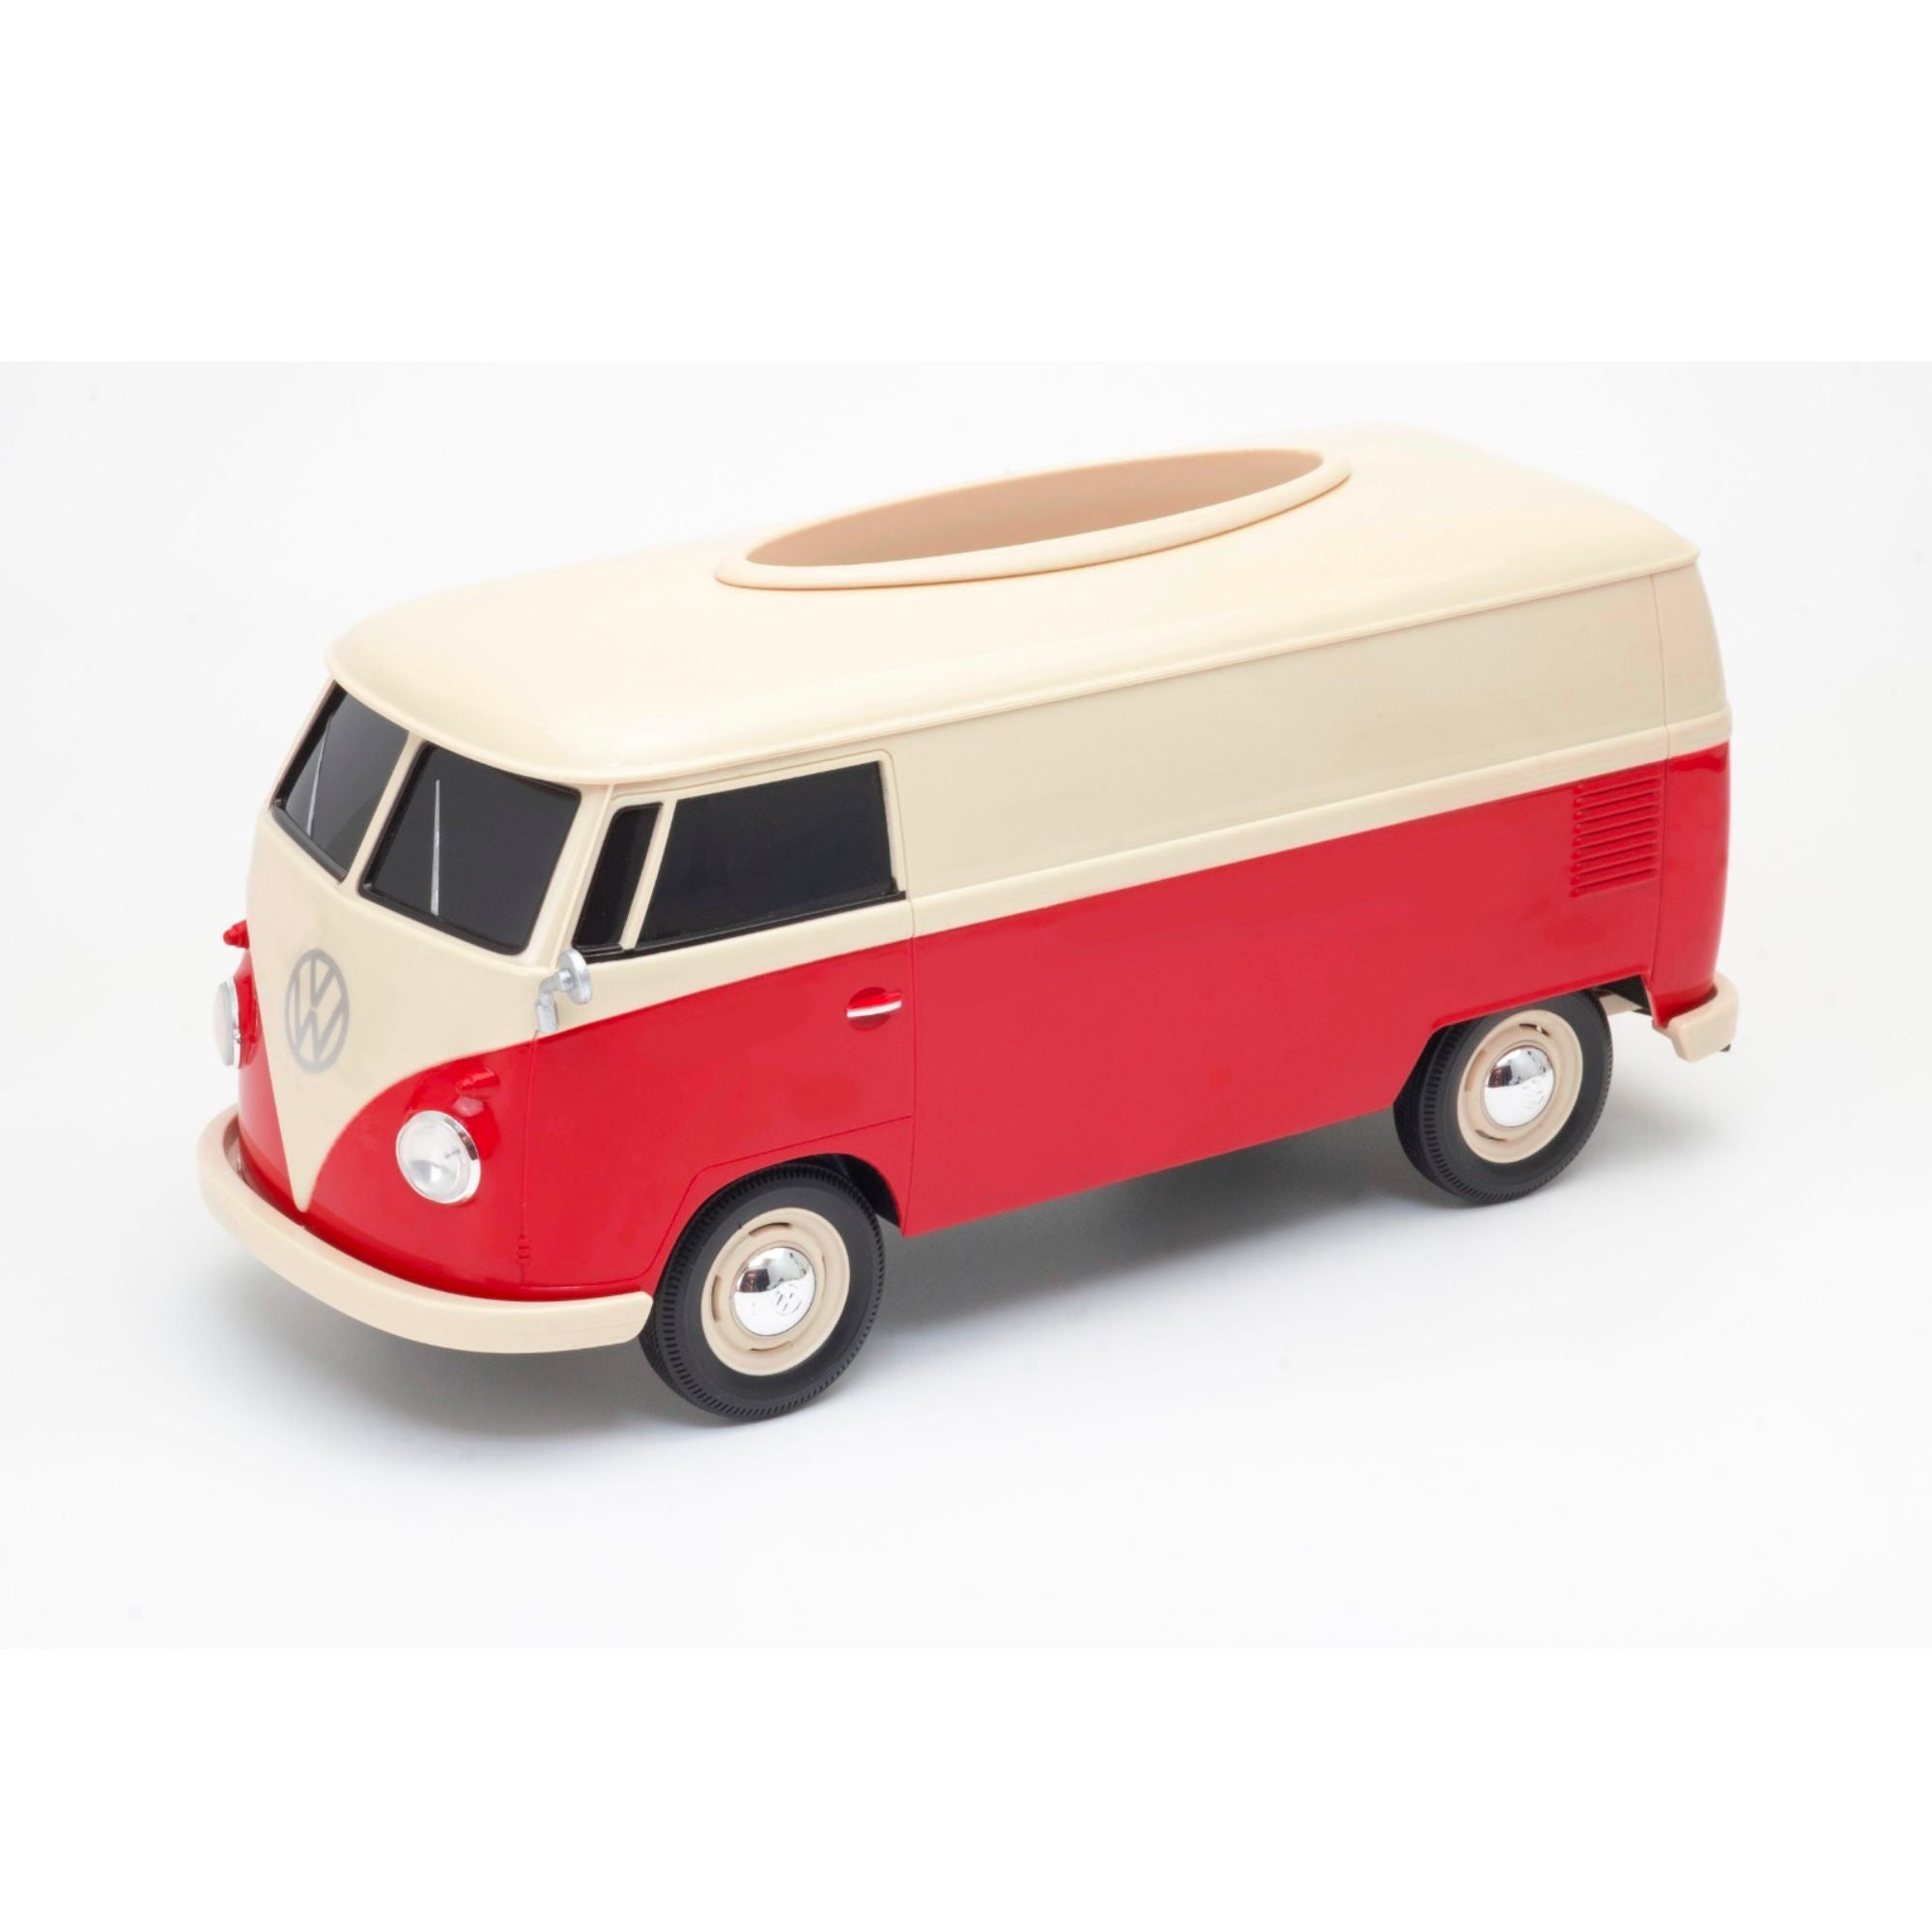 Volkswagen VW T1 Bue 1:16 Tissue Box , Red-Cream